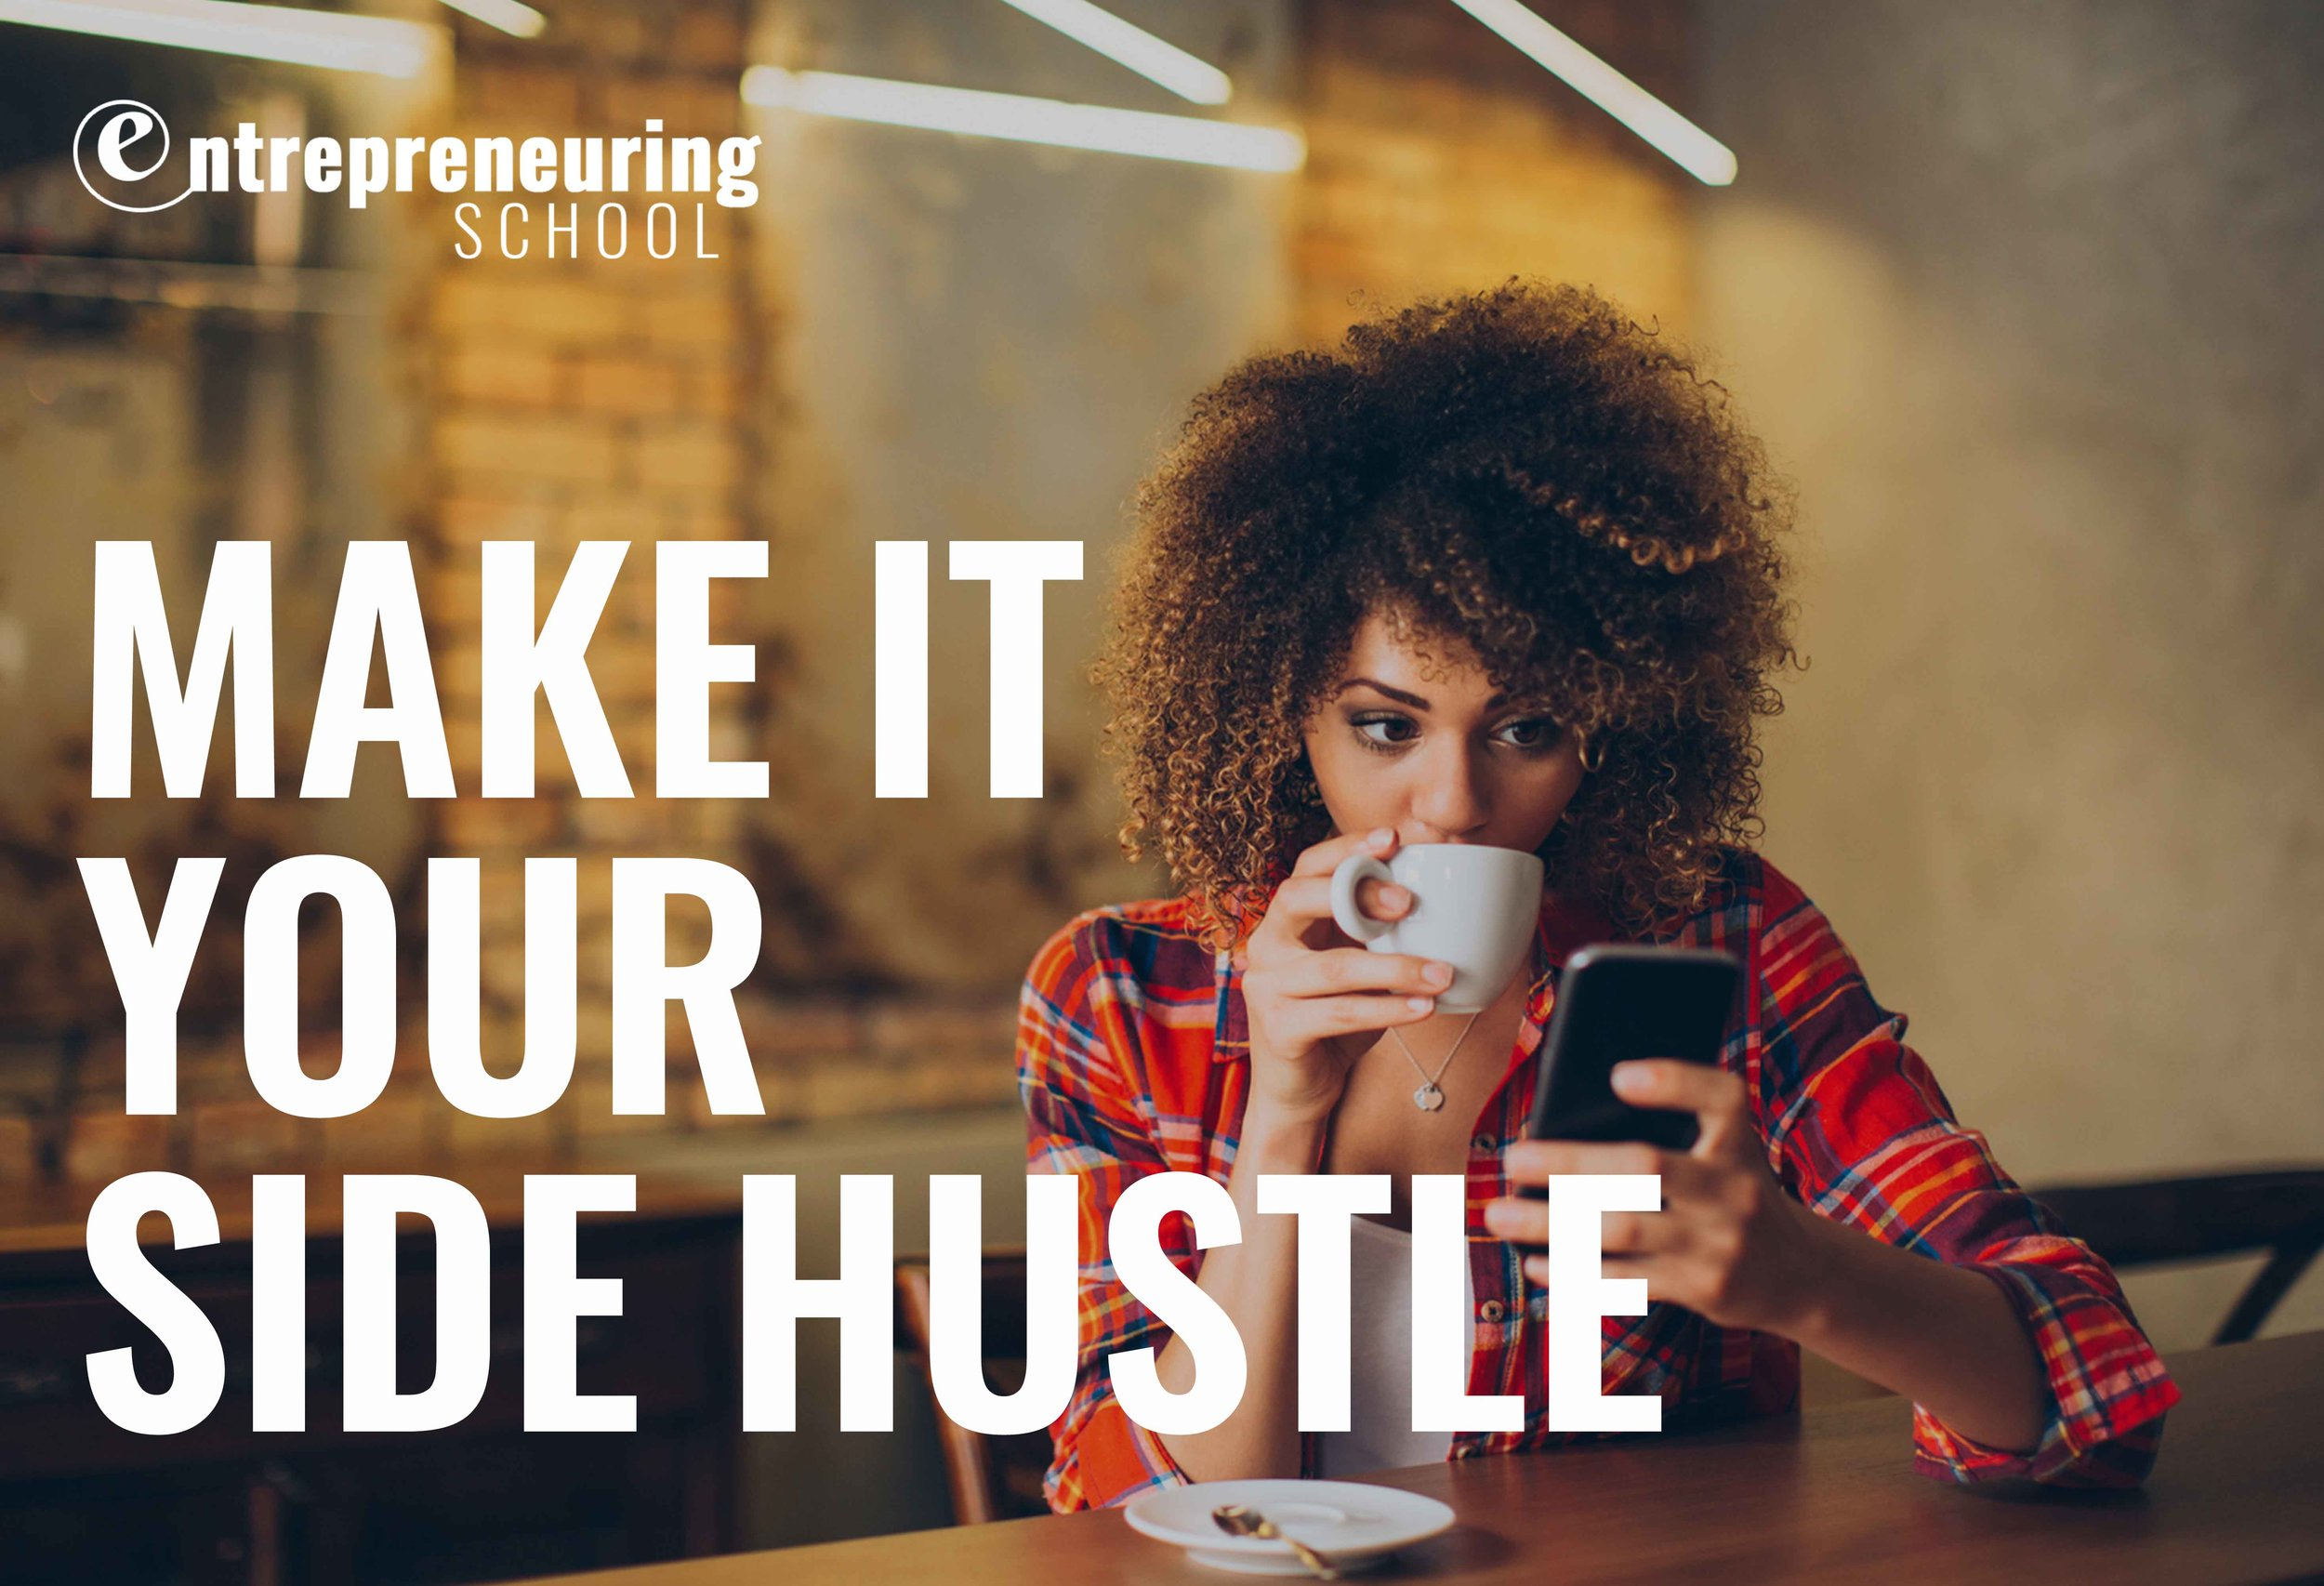 MAKE IT YOUR SIDE HUSTLE.jpg